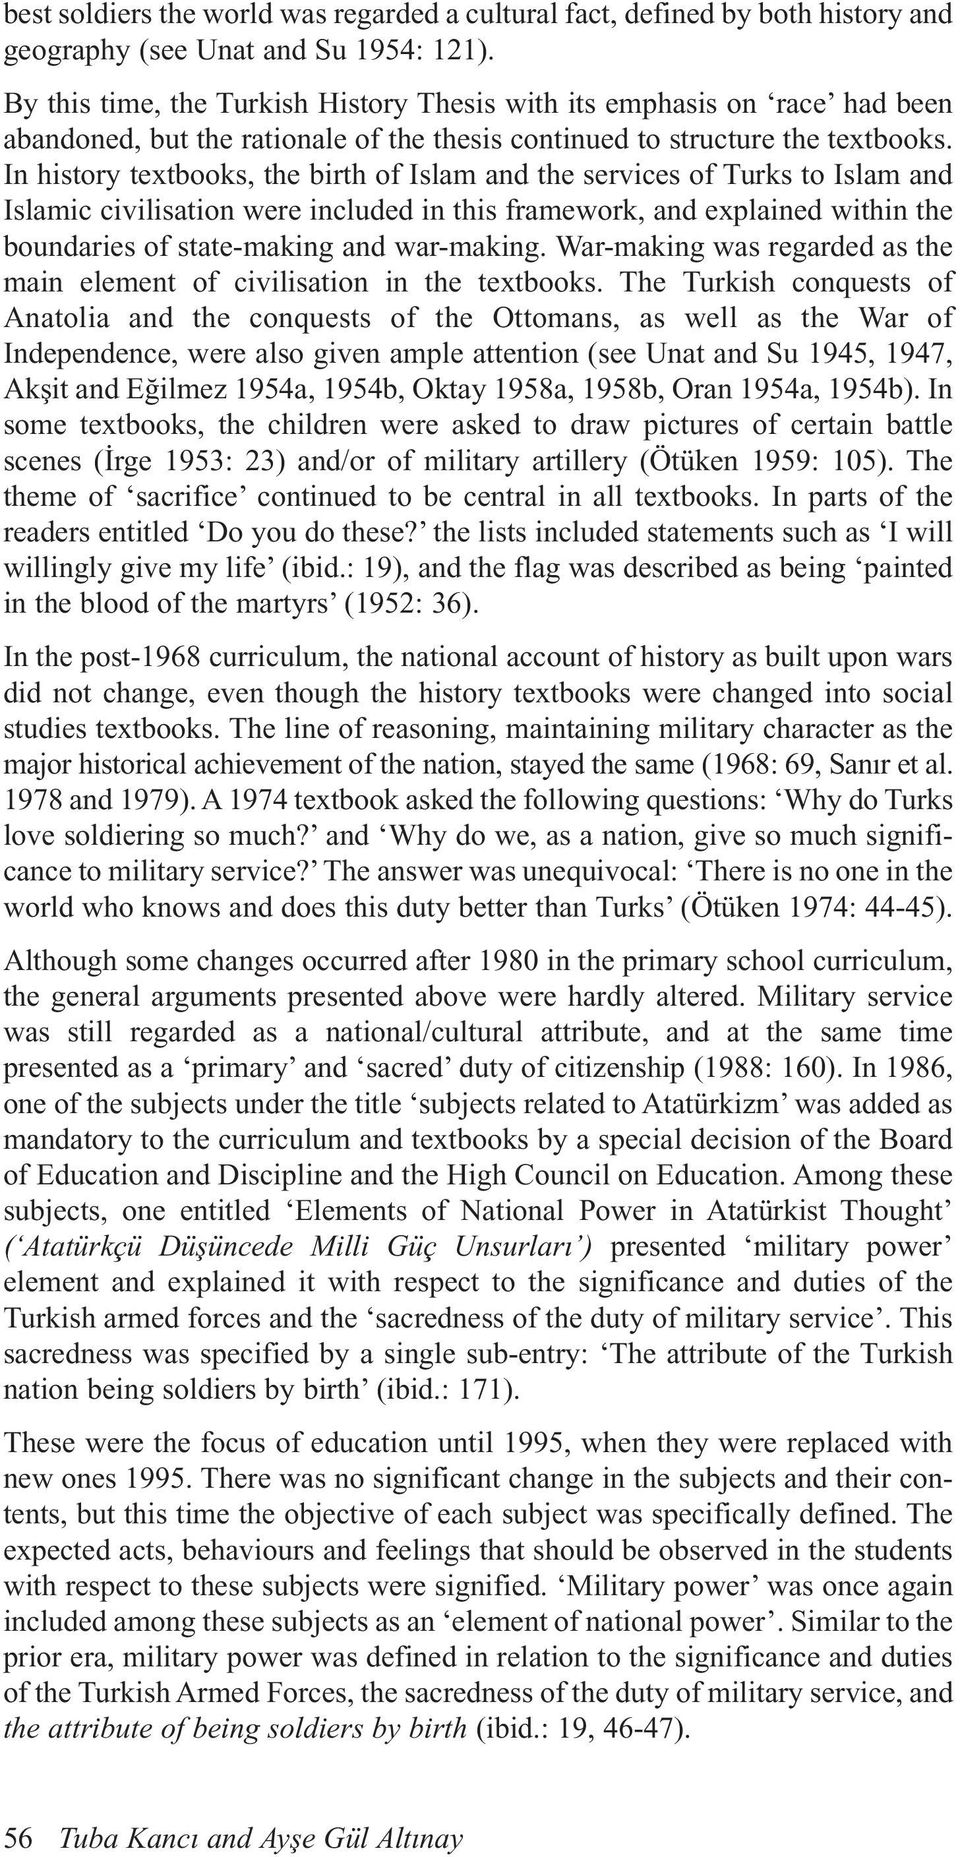 In history textbooks, the birth of Islam and the services of Turks to Islam and Islamic civilisation were included in this framework, and explained within the boundaries of state-making and